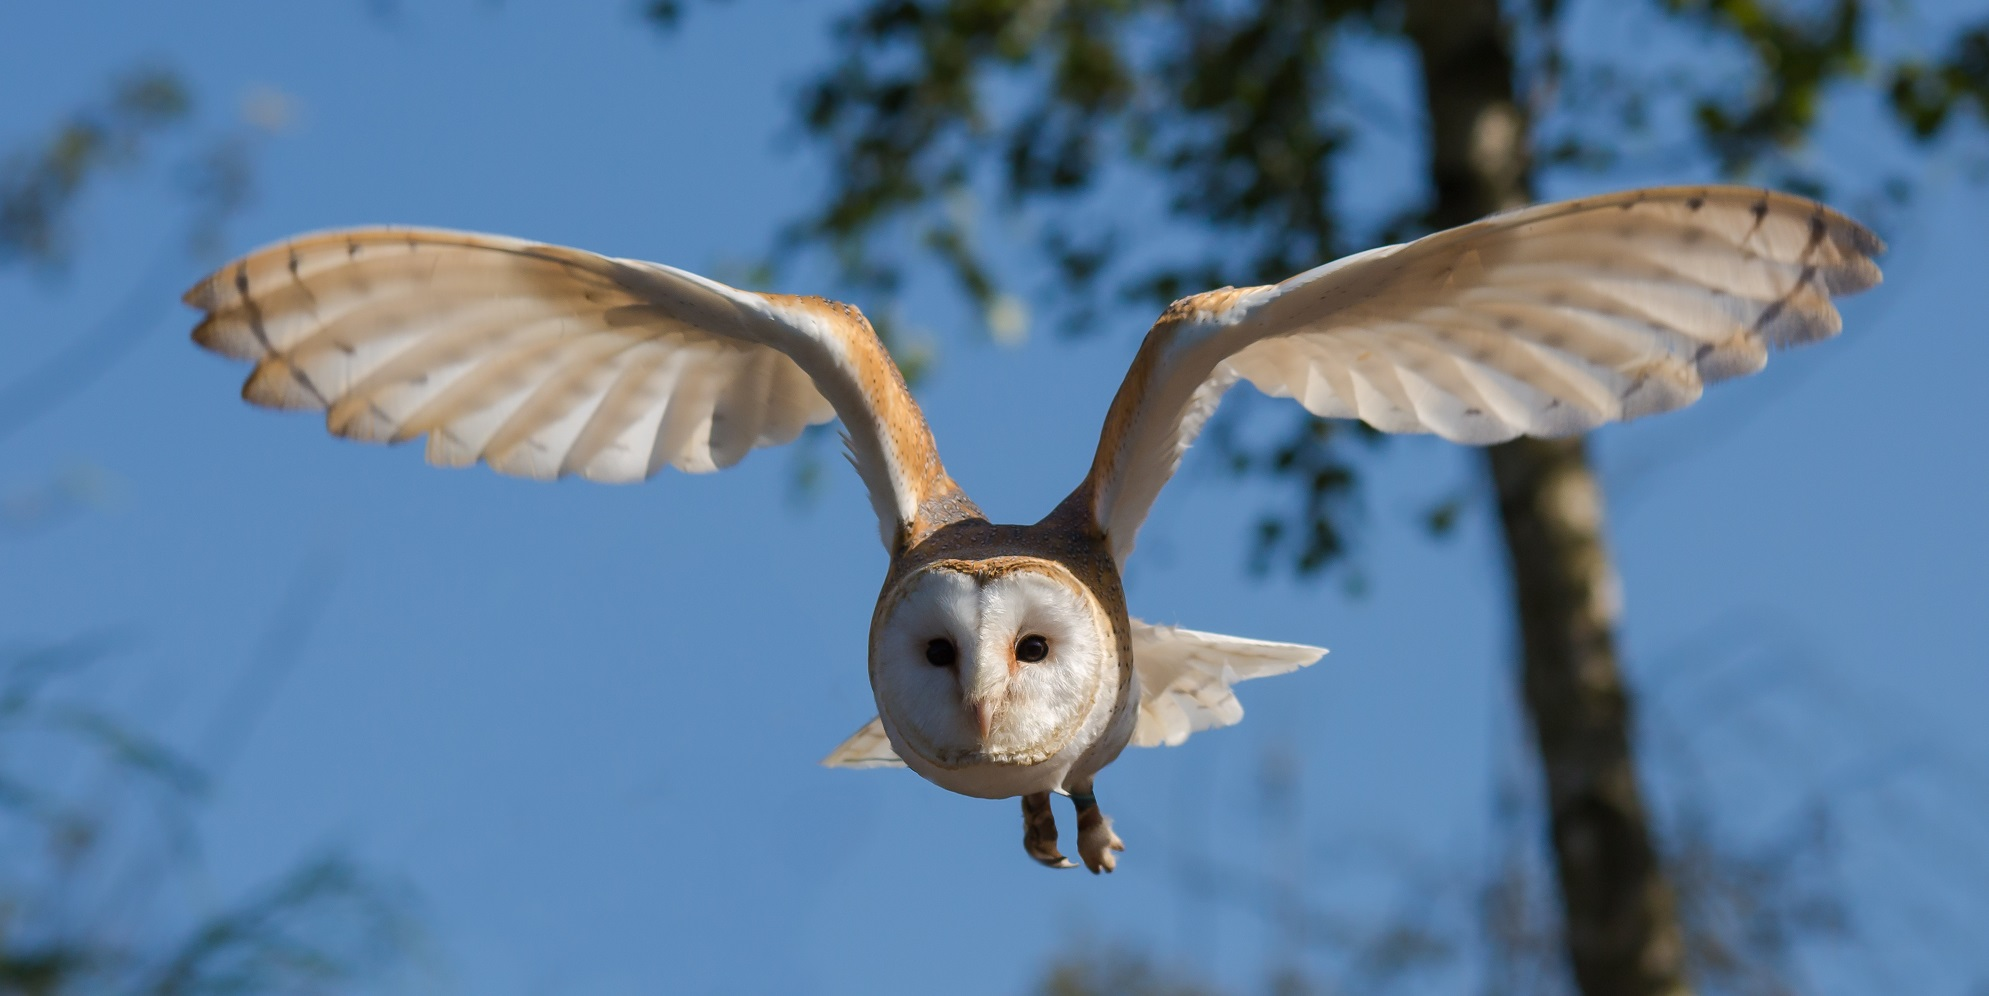 Barn Owl in flight with sky background